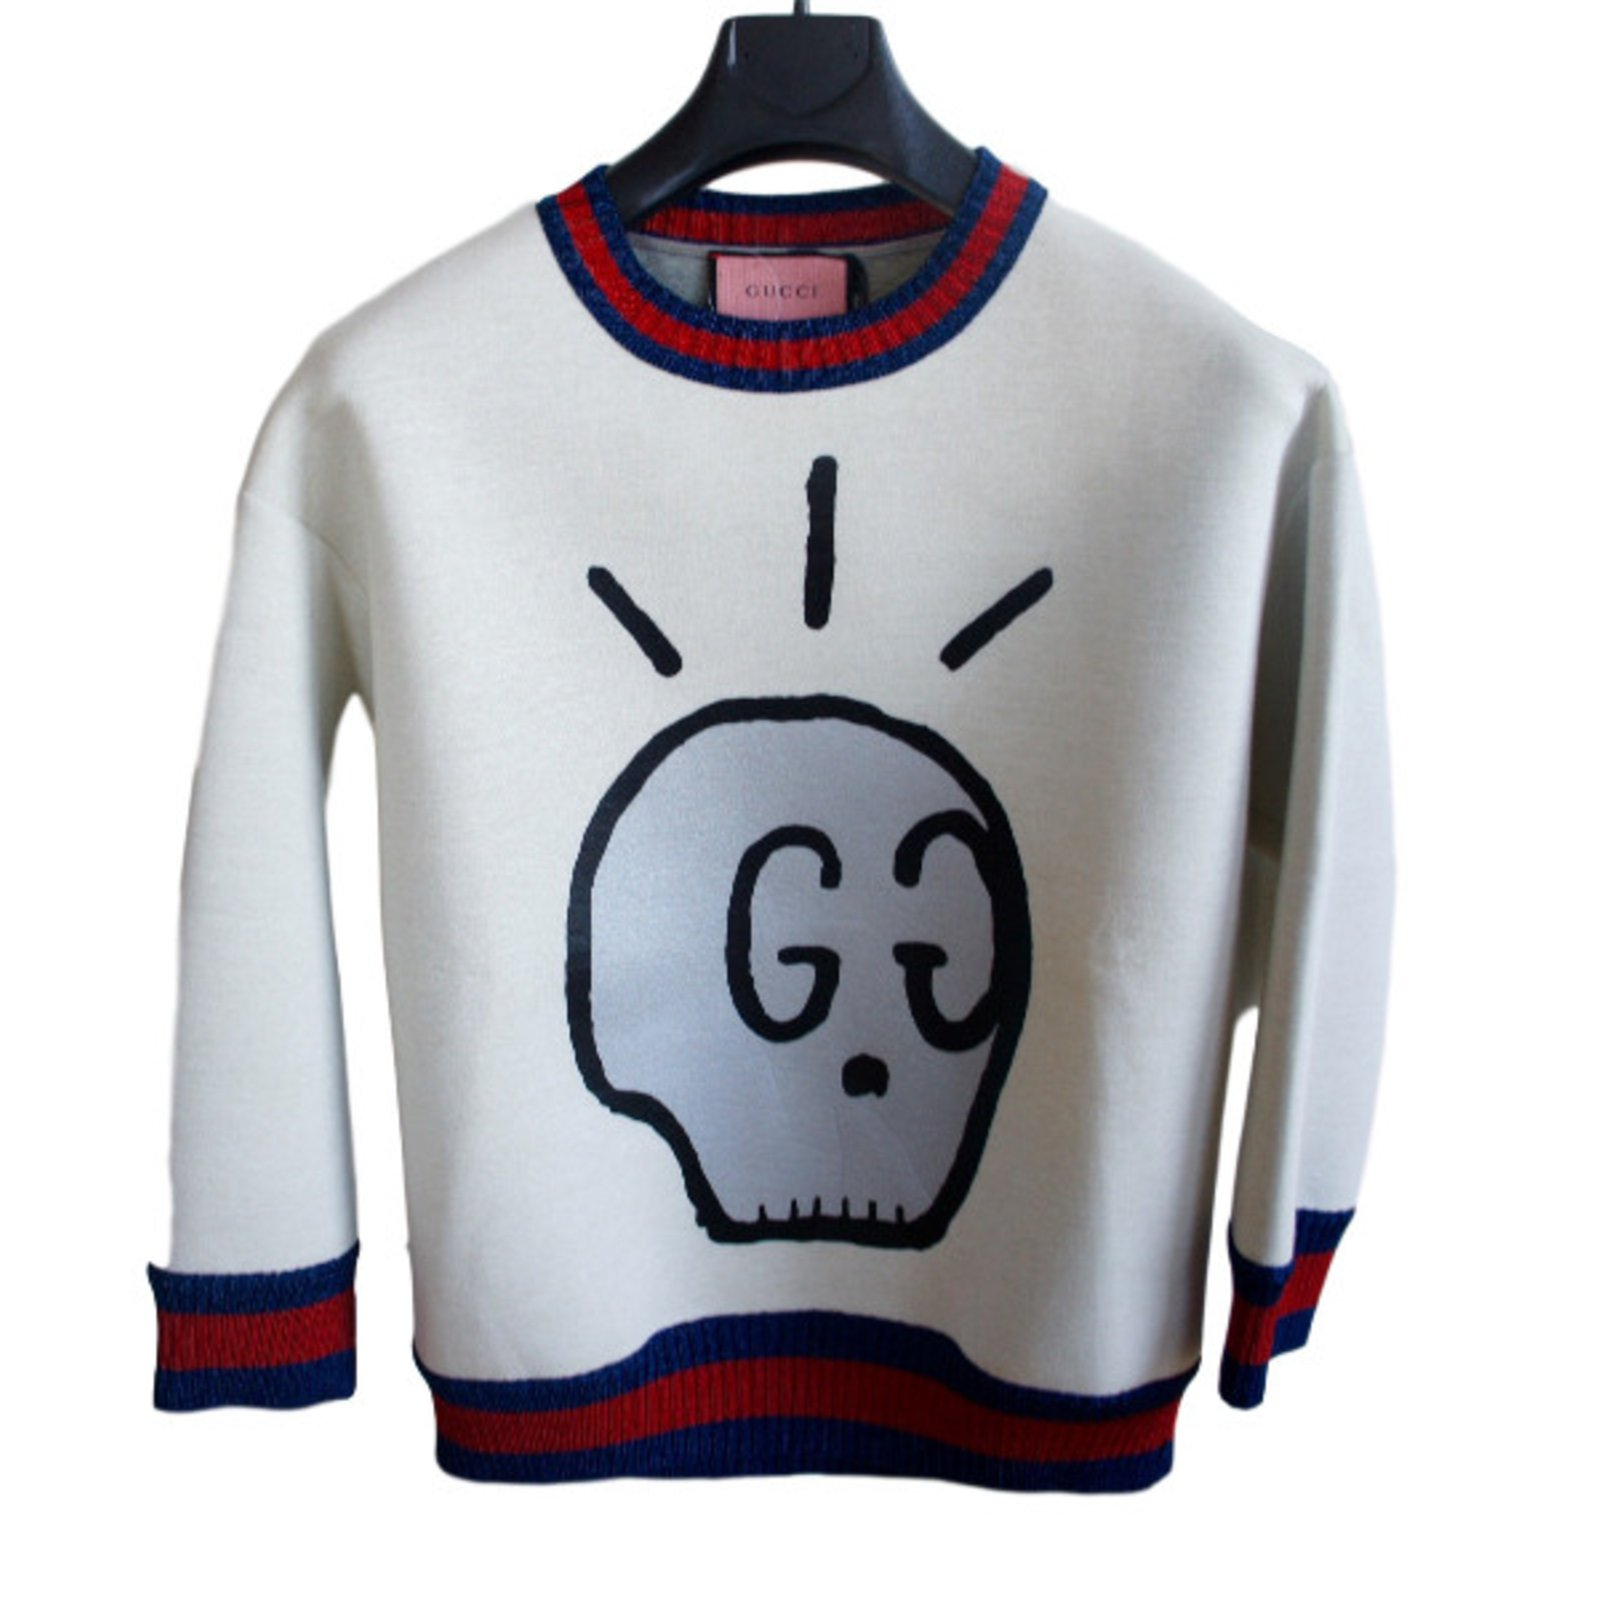 Gucci Gucci Ghost Sold Out Knitwear Cotton Multiple Colors Ref 30616 Joli Closet